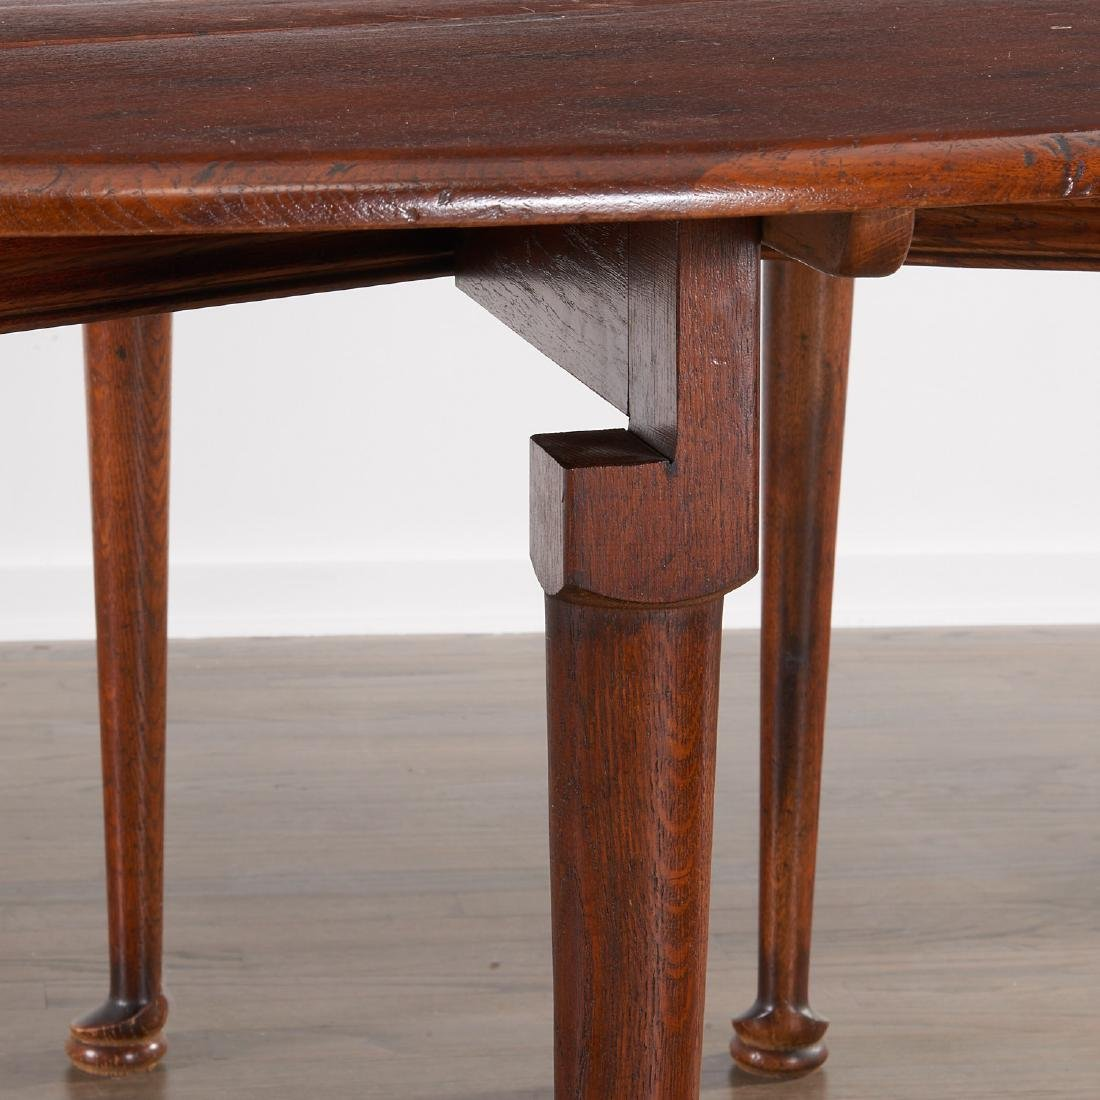 George II style drop leaf hunt table - 3